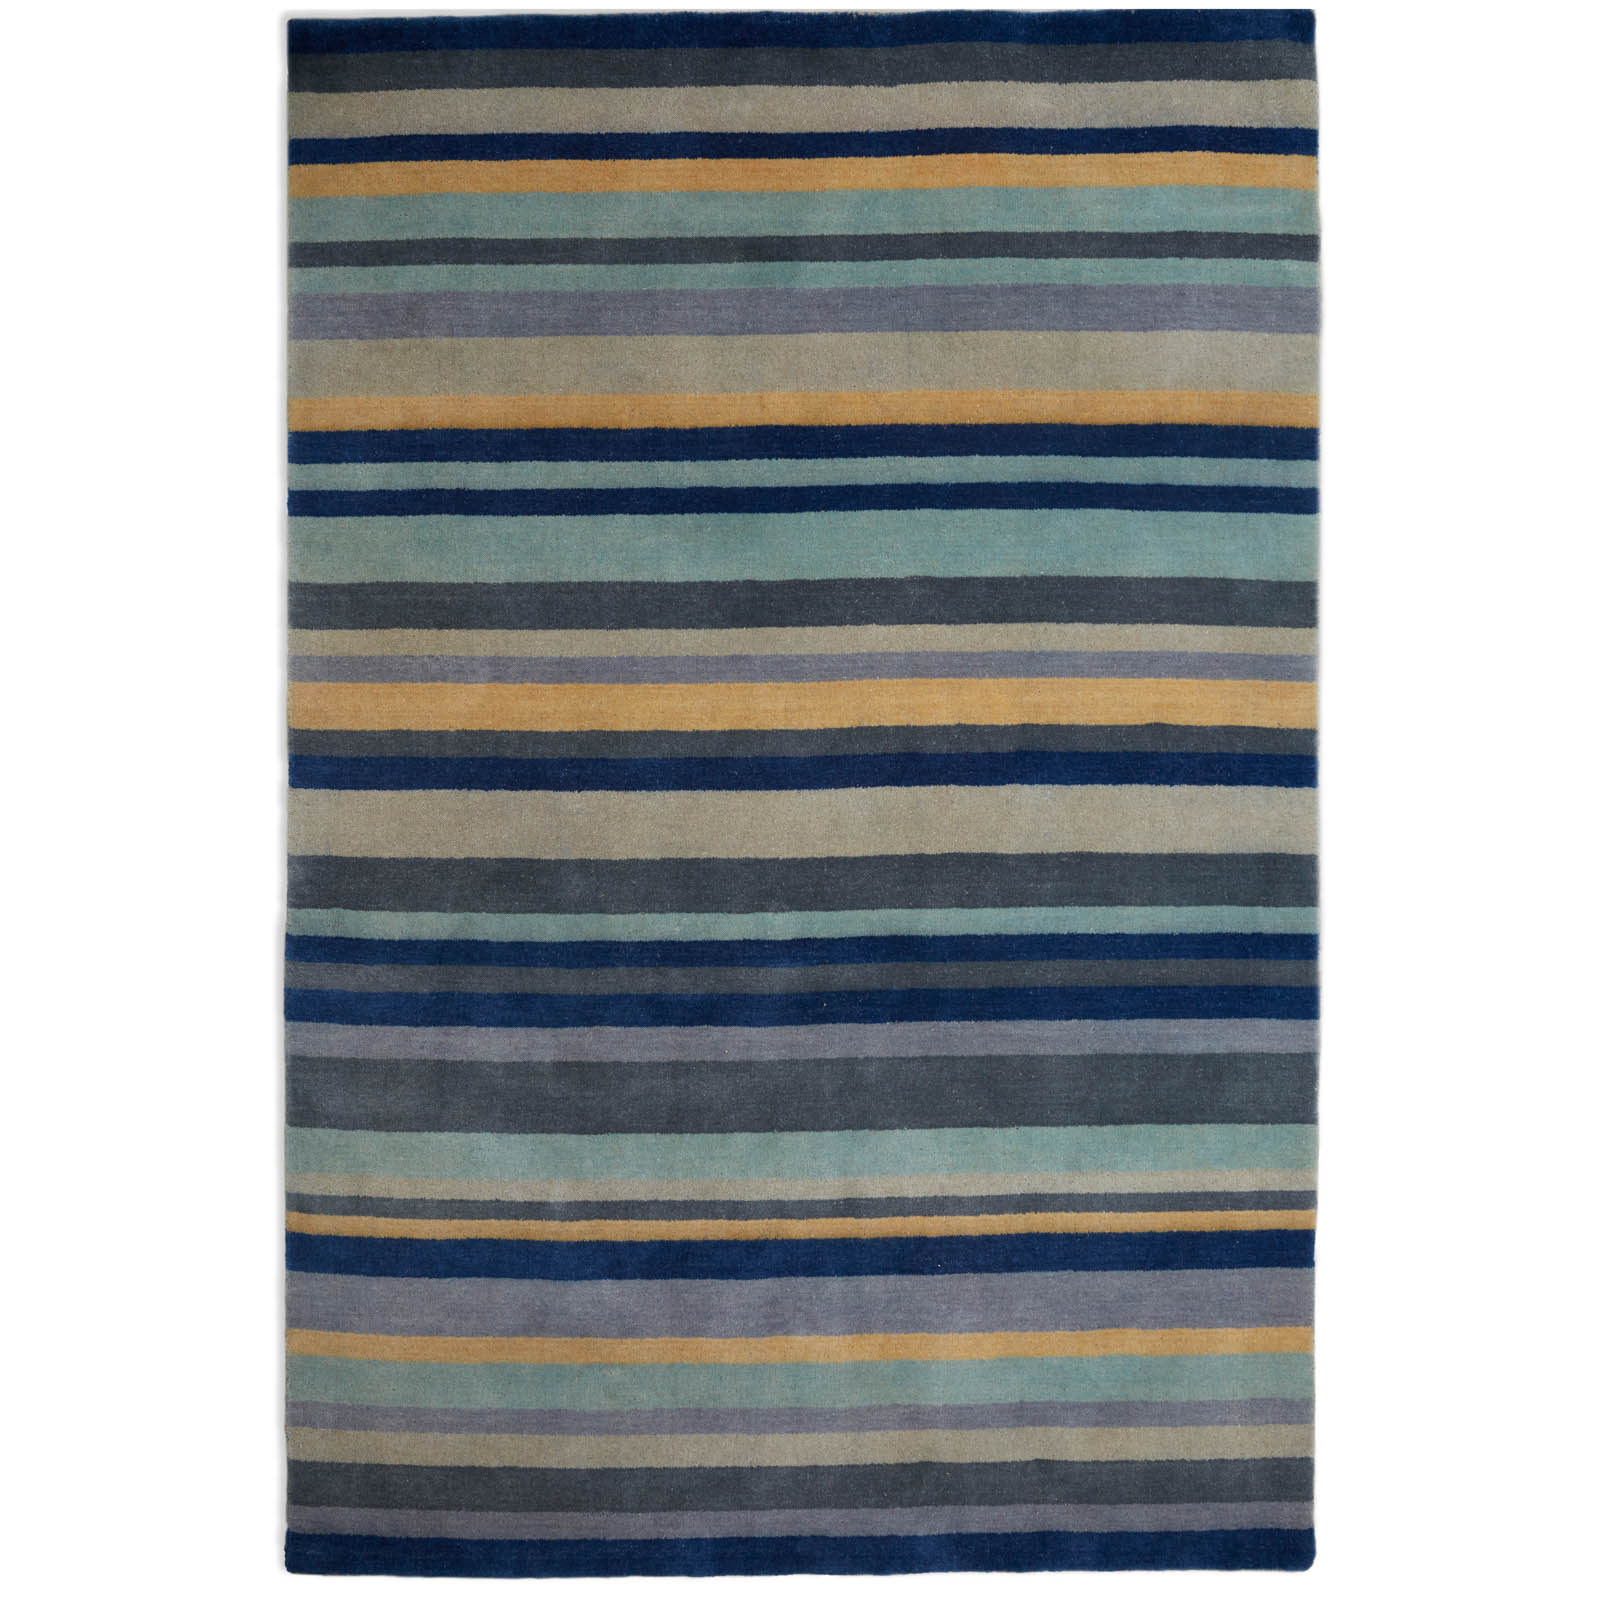 Ainslie Striped Rugs AIN03 in Blue